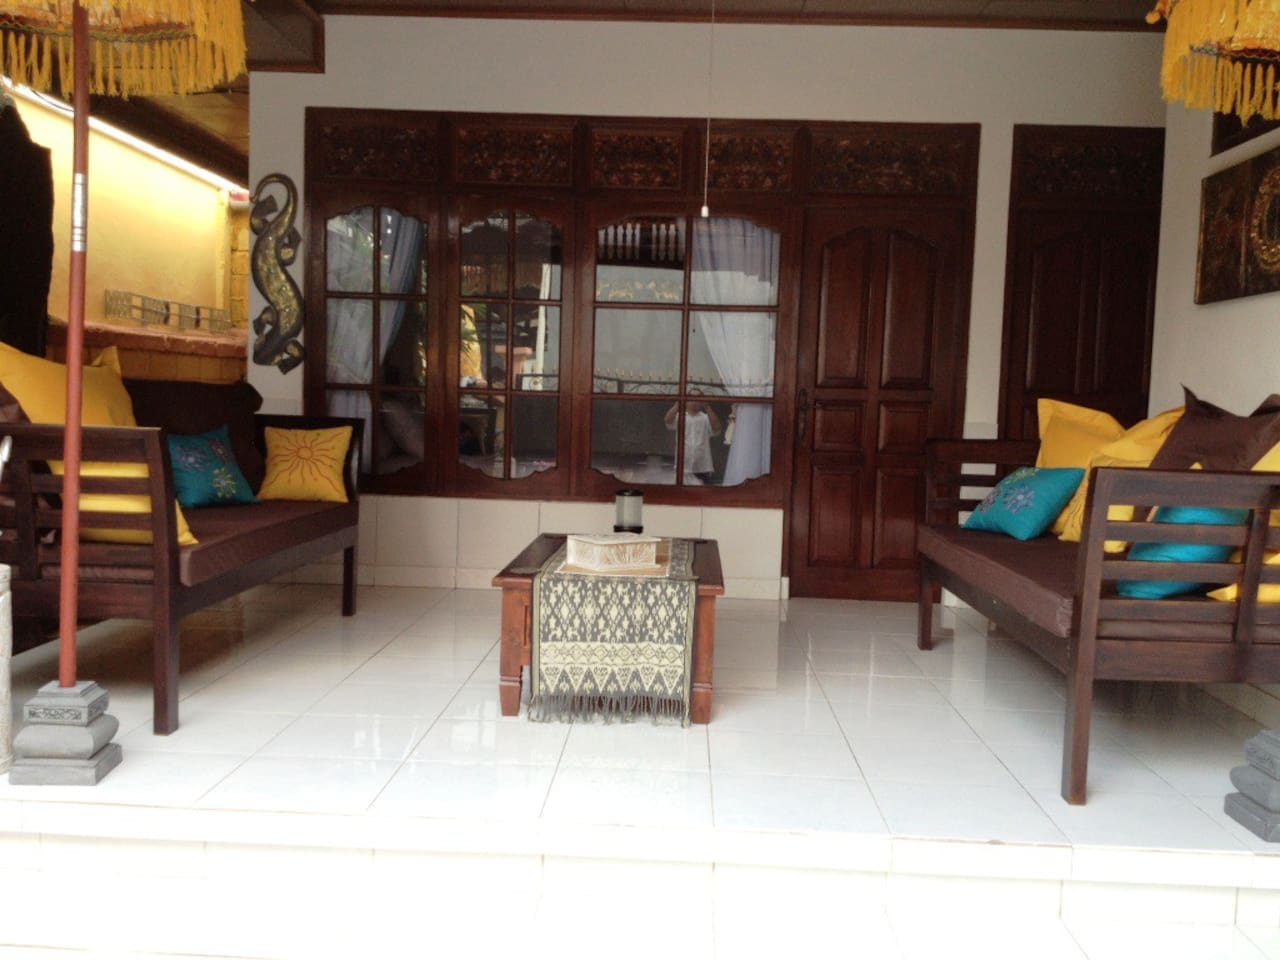 Veranda with daybeds